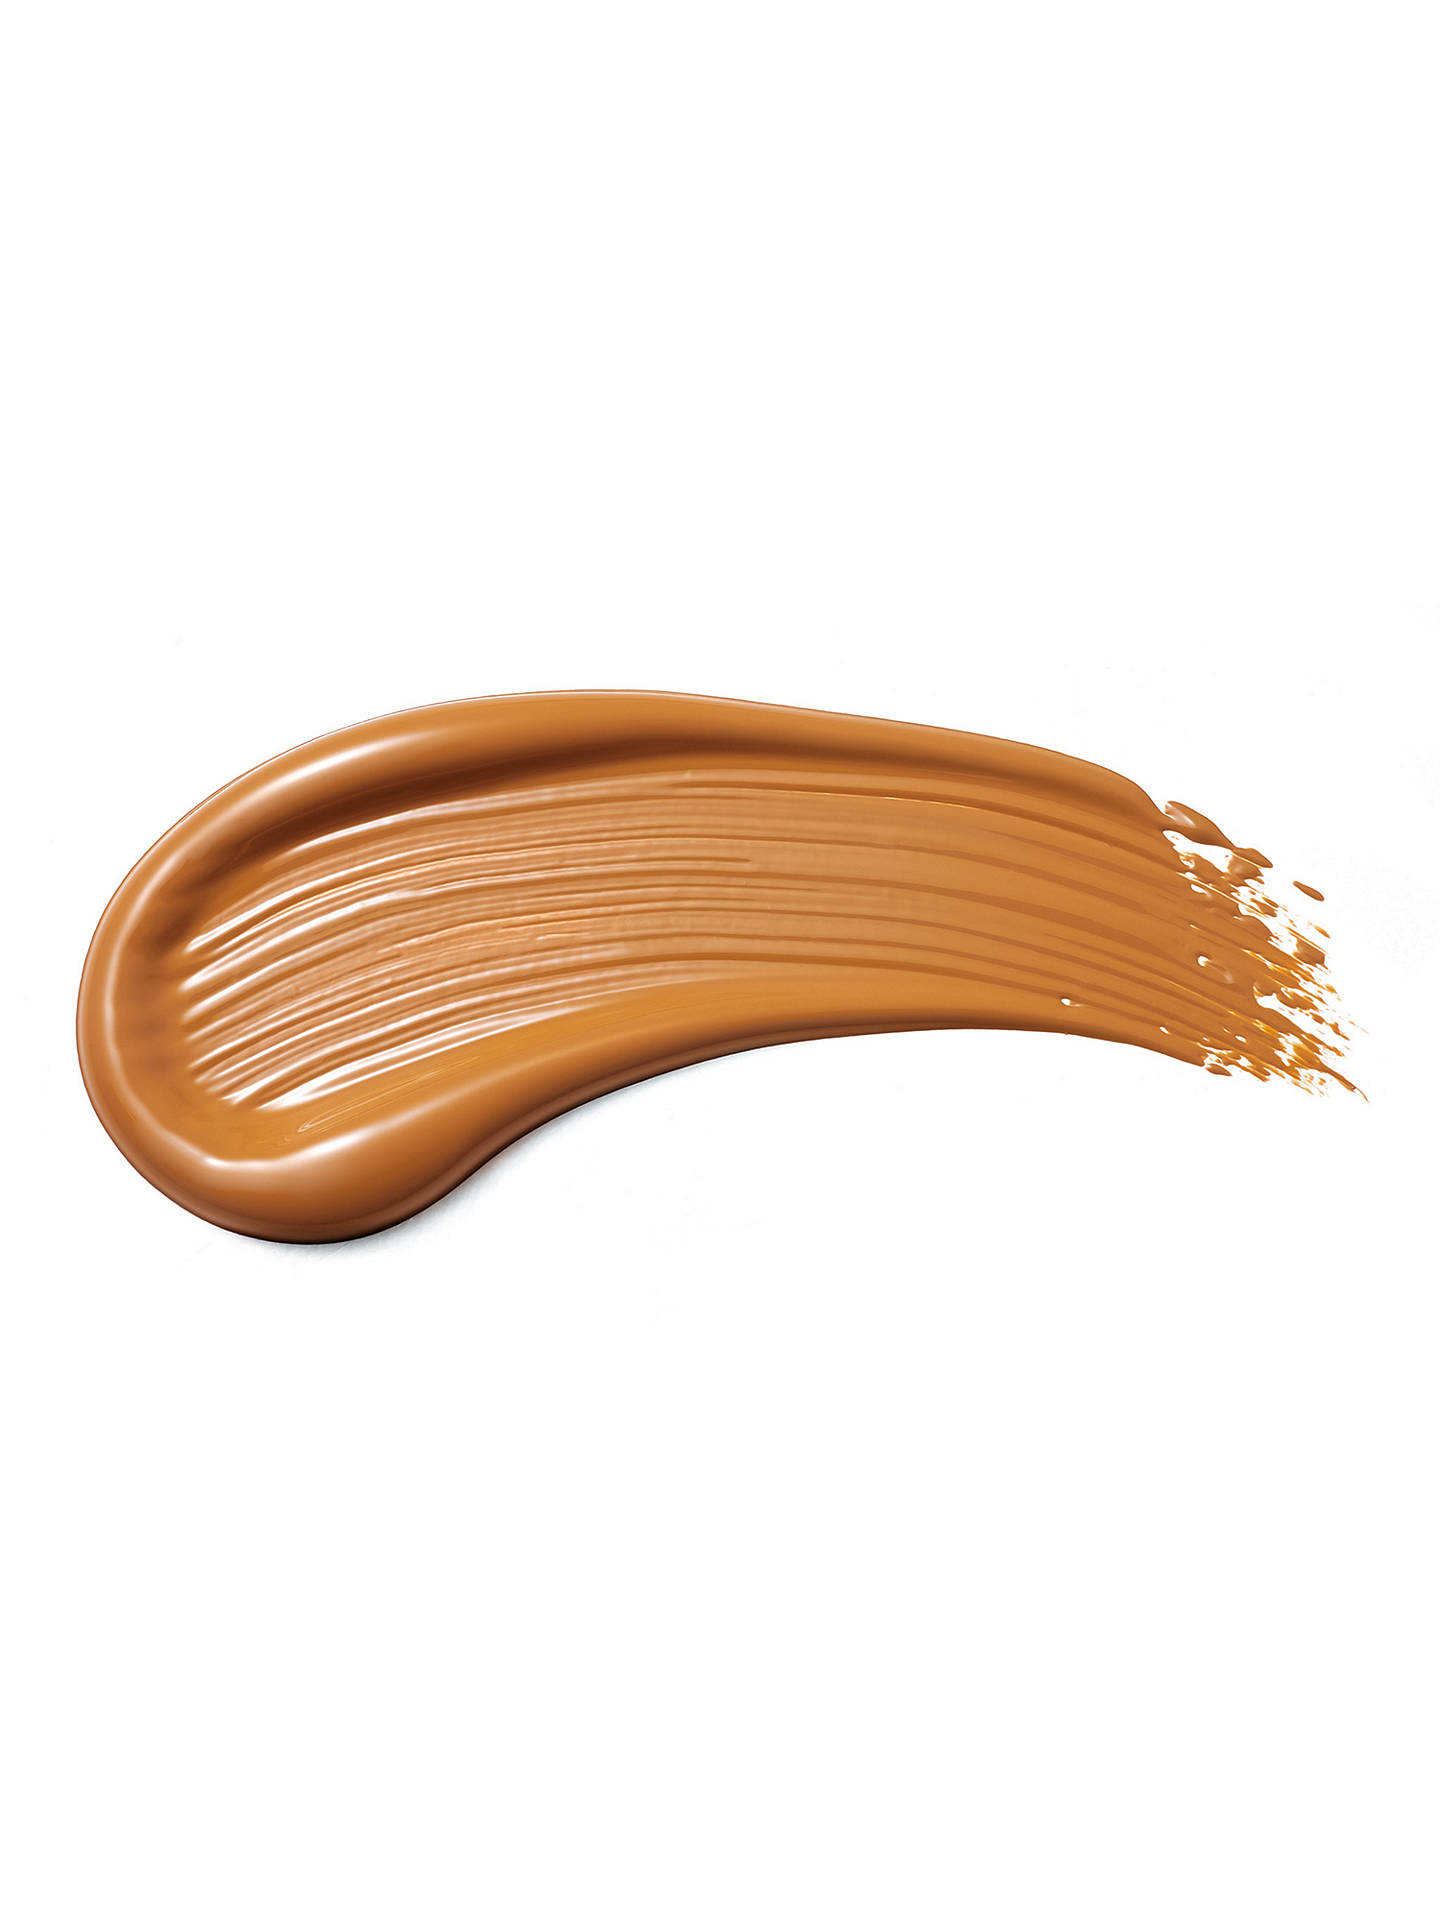 Buy delilah Time Frame Future Resist Foundation SPF 20, Chesnut Online at johnlewis.com